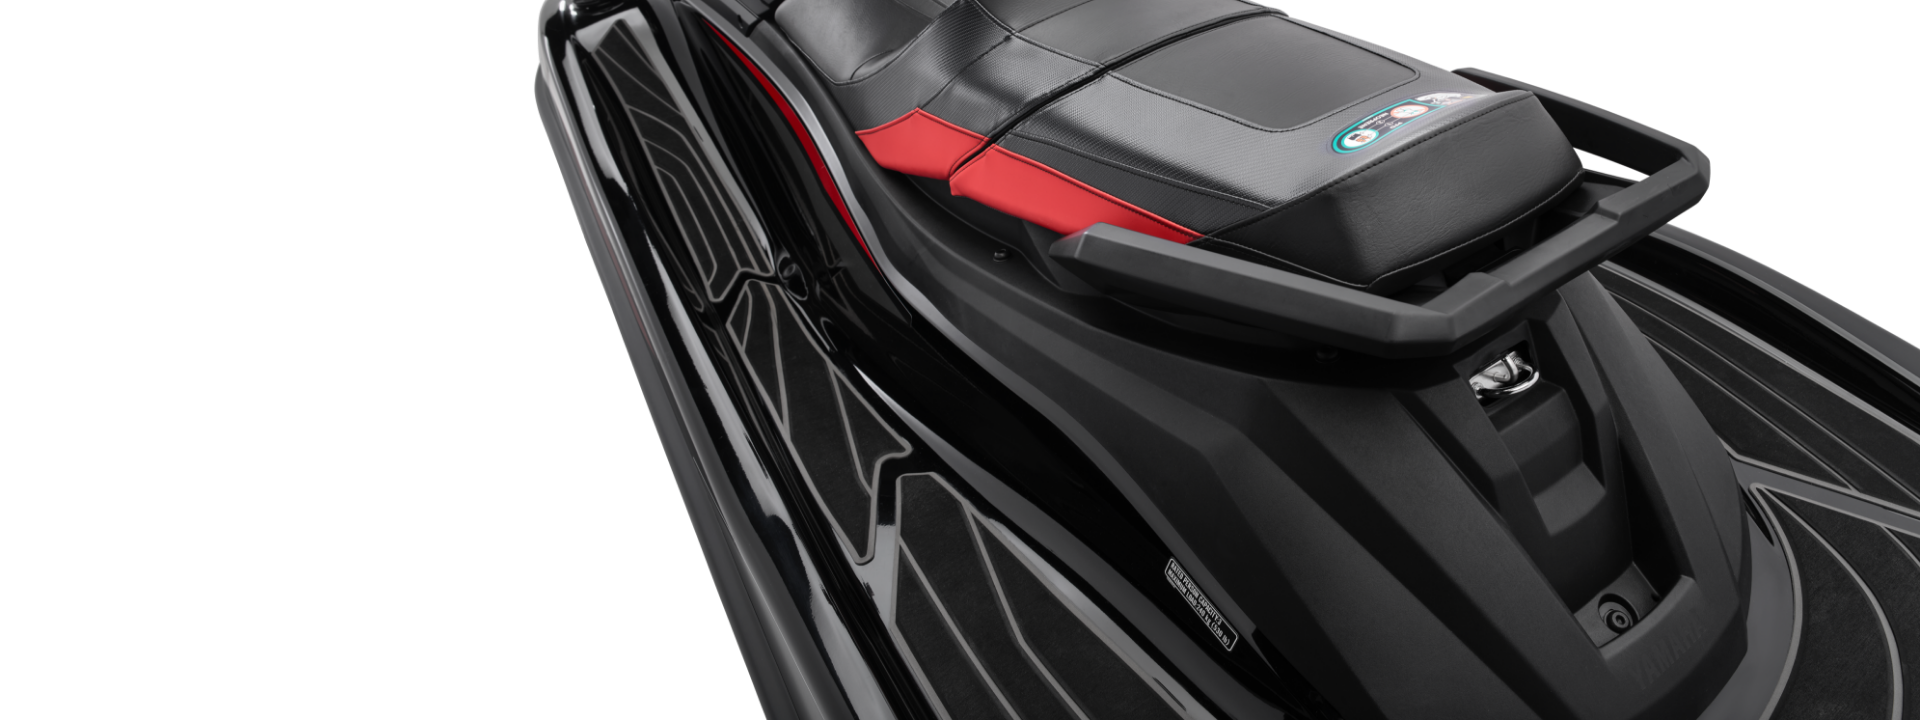 yamaha-waverunners-2021-gp1800r-feature-stern.png